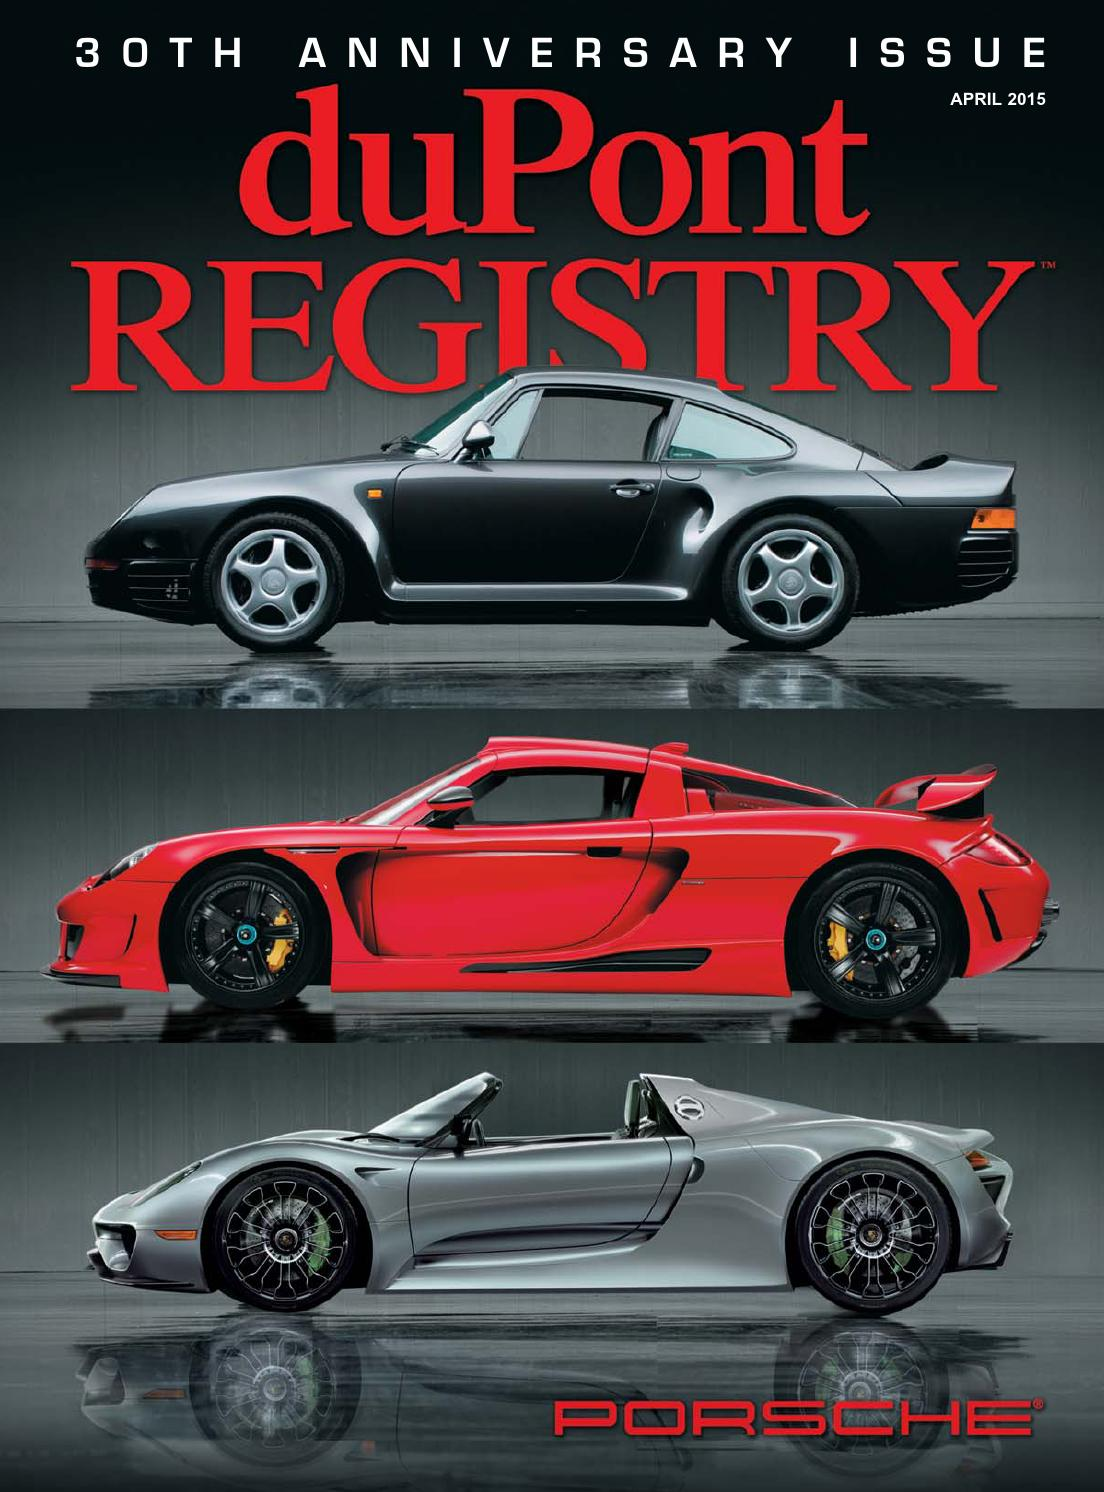 b545219fba1 duPontREGISTRY Autos April 2015 by duPont REGISTRY - issuu